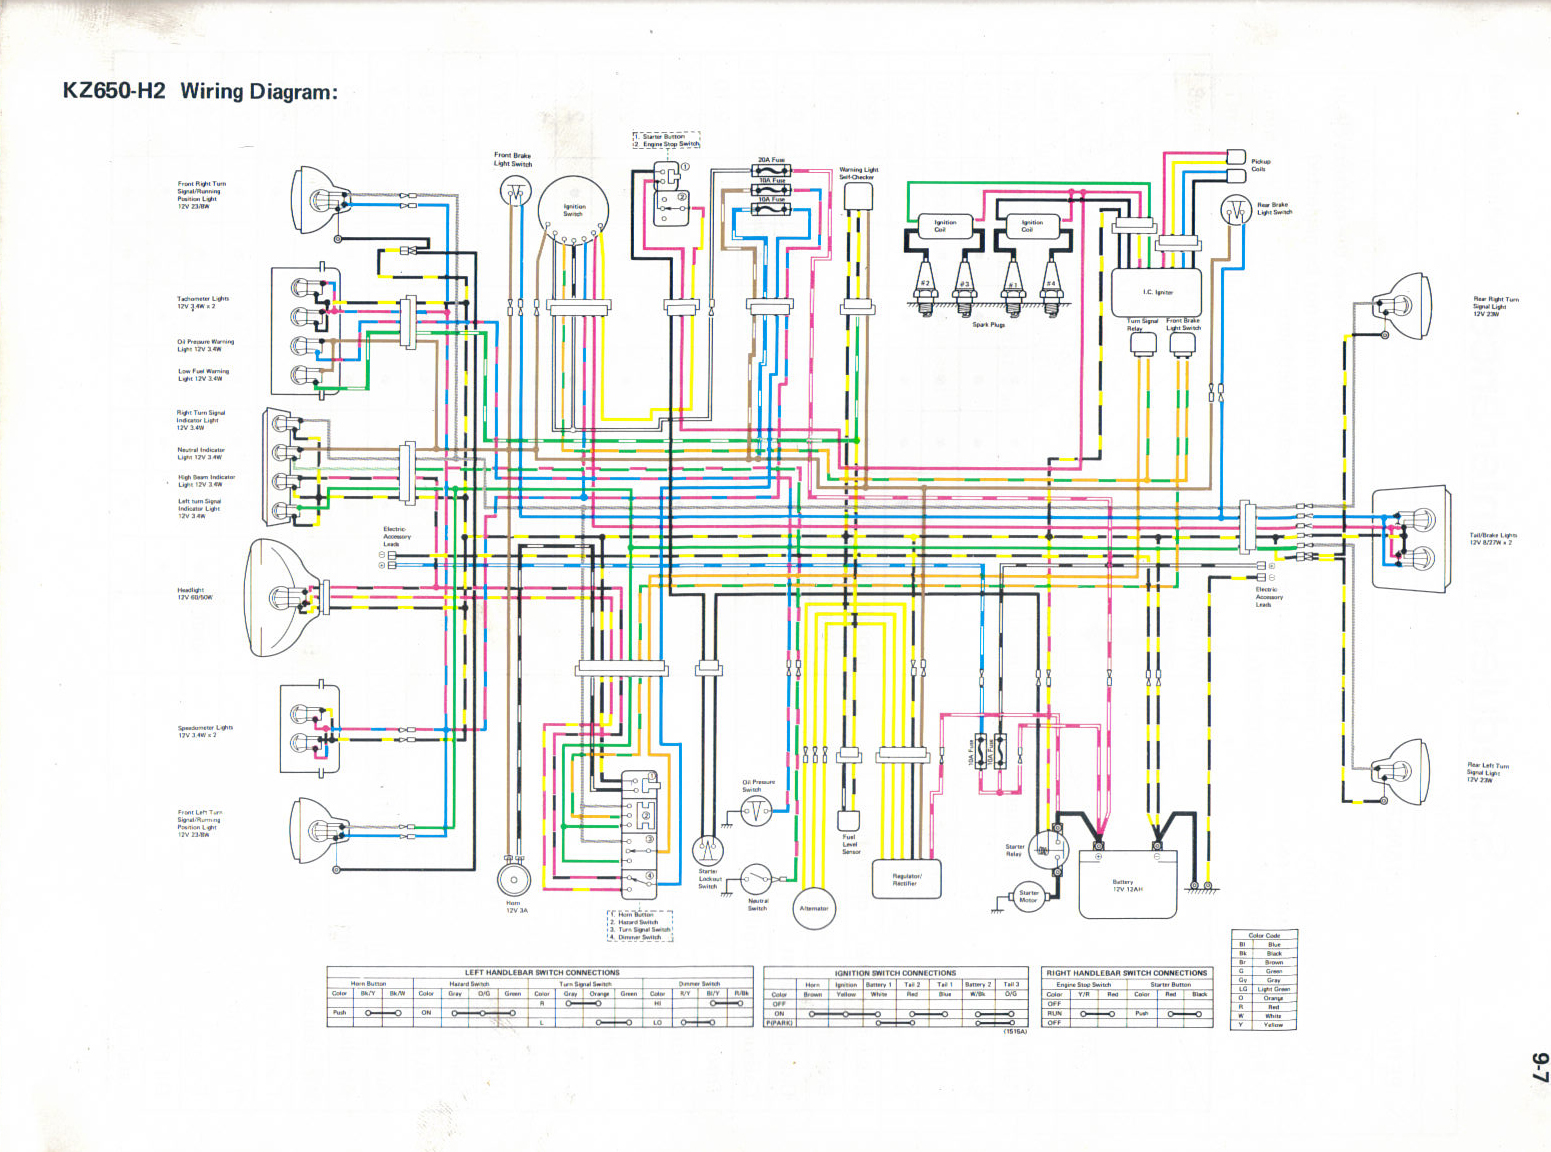 Kawasaki Zx7r Wiring Diagram Hecho Schematic Diagrams Fd620 Example Electrical U2022 Zx9r